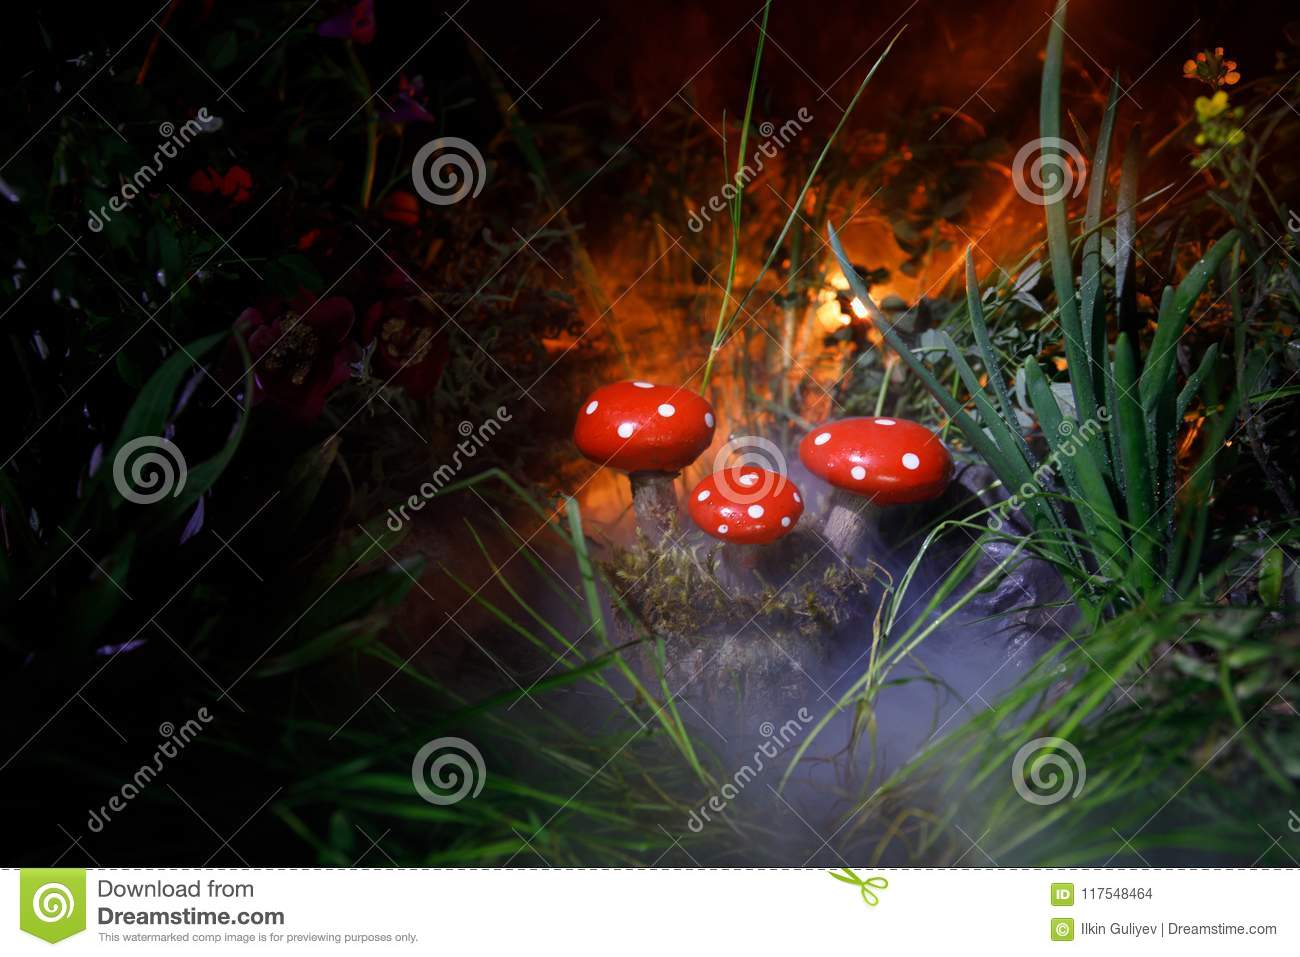 Mushroom. Fantasy Glowing Mushrooms in mystery dark forest close-up. Amanita muscaria, Fly Agaric in moss in forest. Magic mushroo